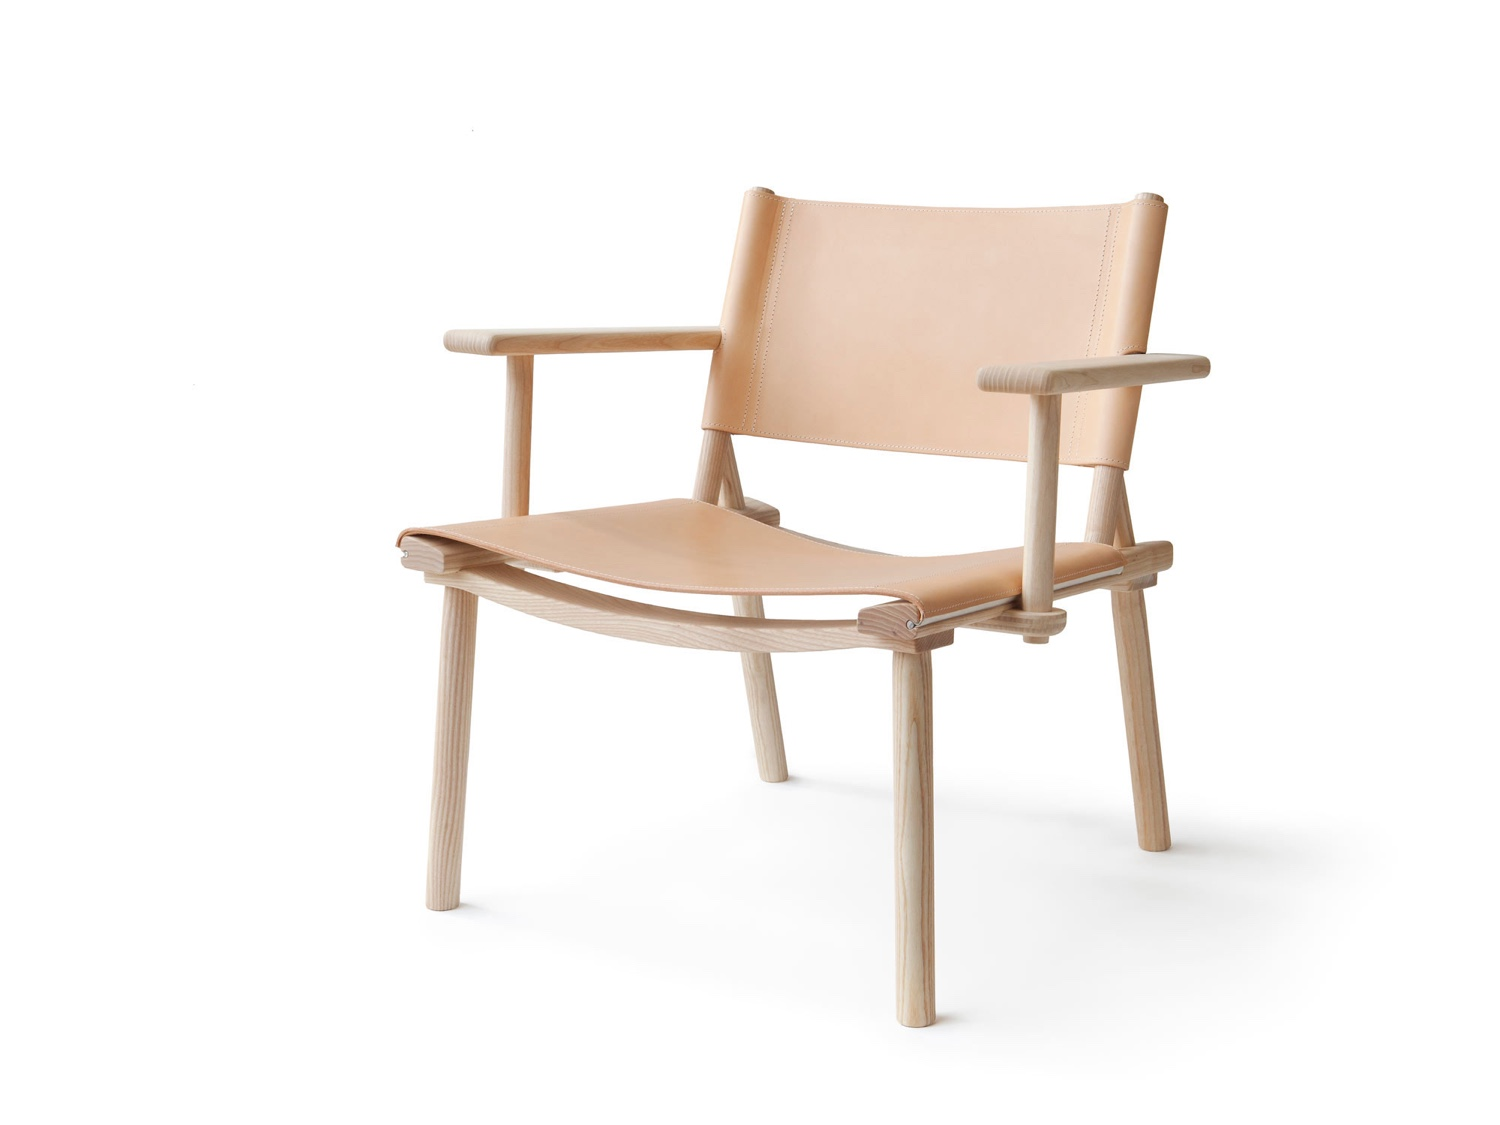 December Armchair (2016). Jasper Morrison and Japanese designer Wataru Kumano designed the December armchair for Nikari, a Finnish manufacturer of sustainable wood design products.